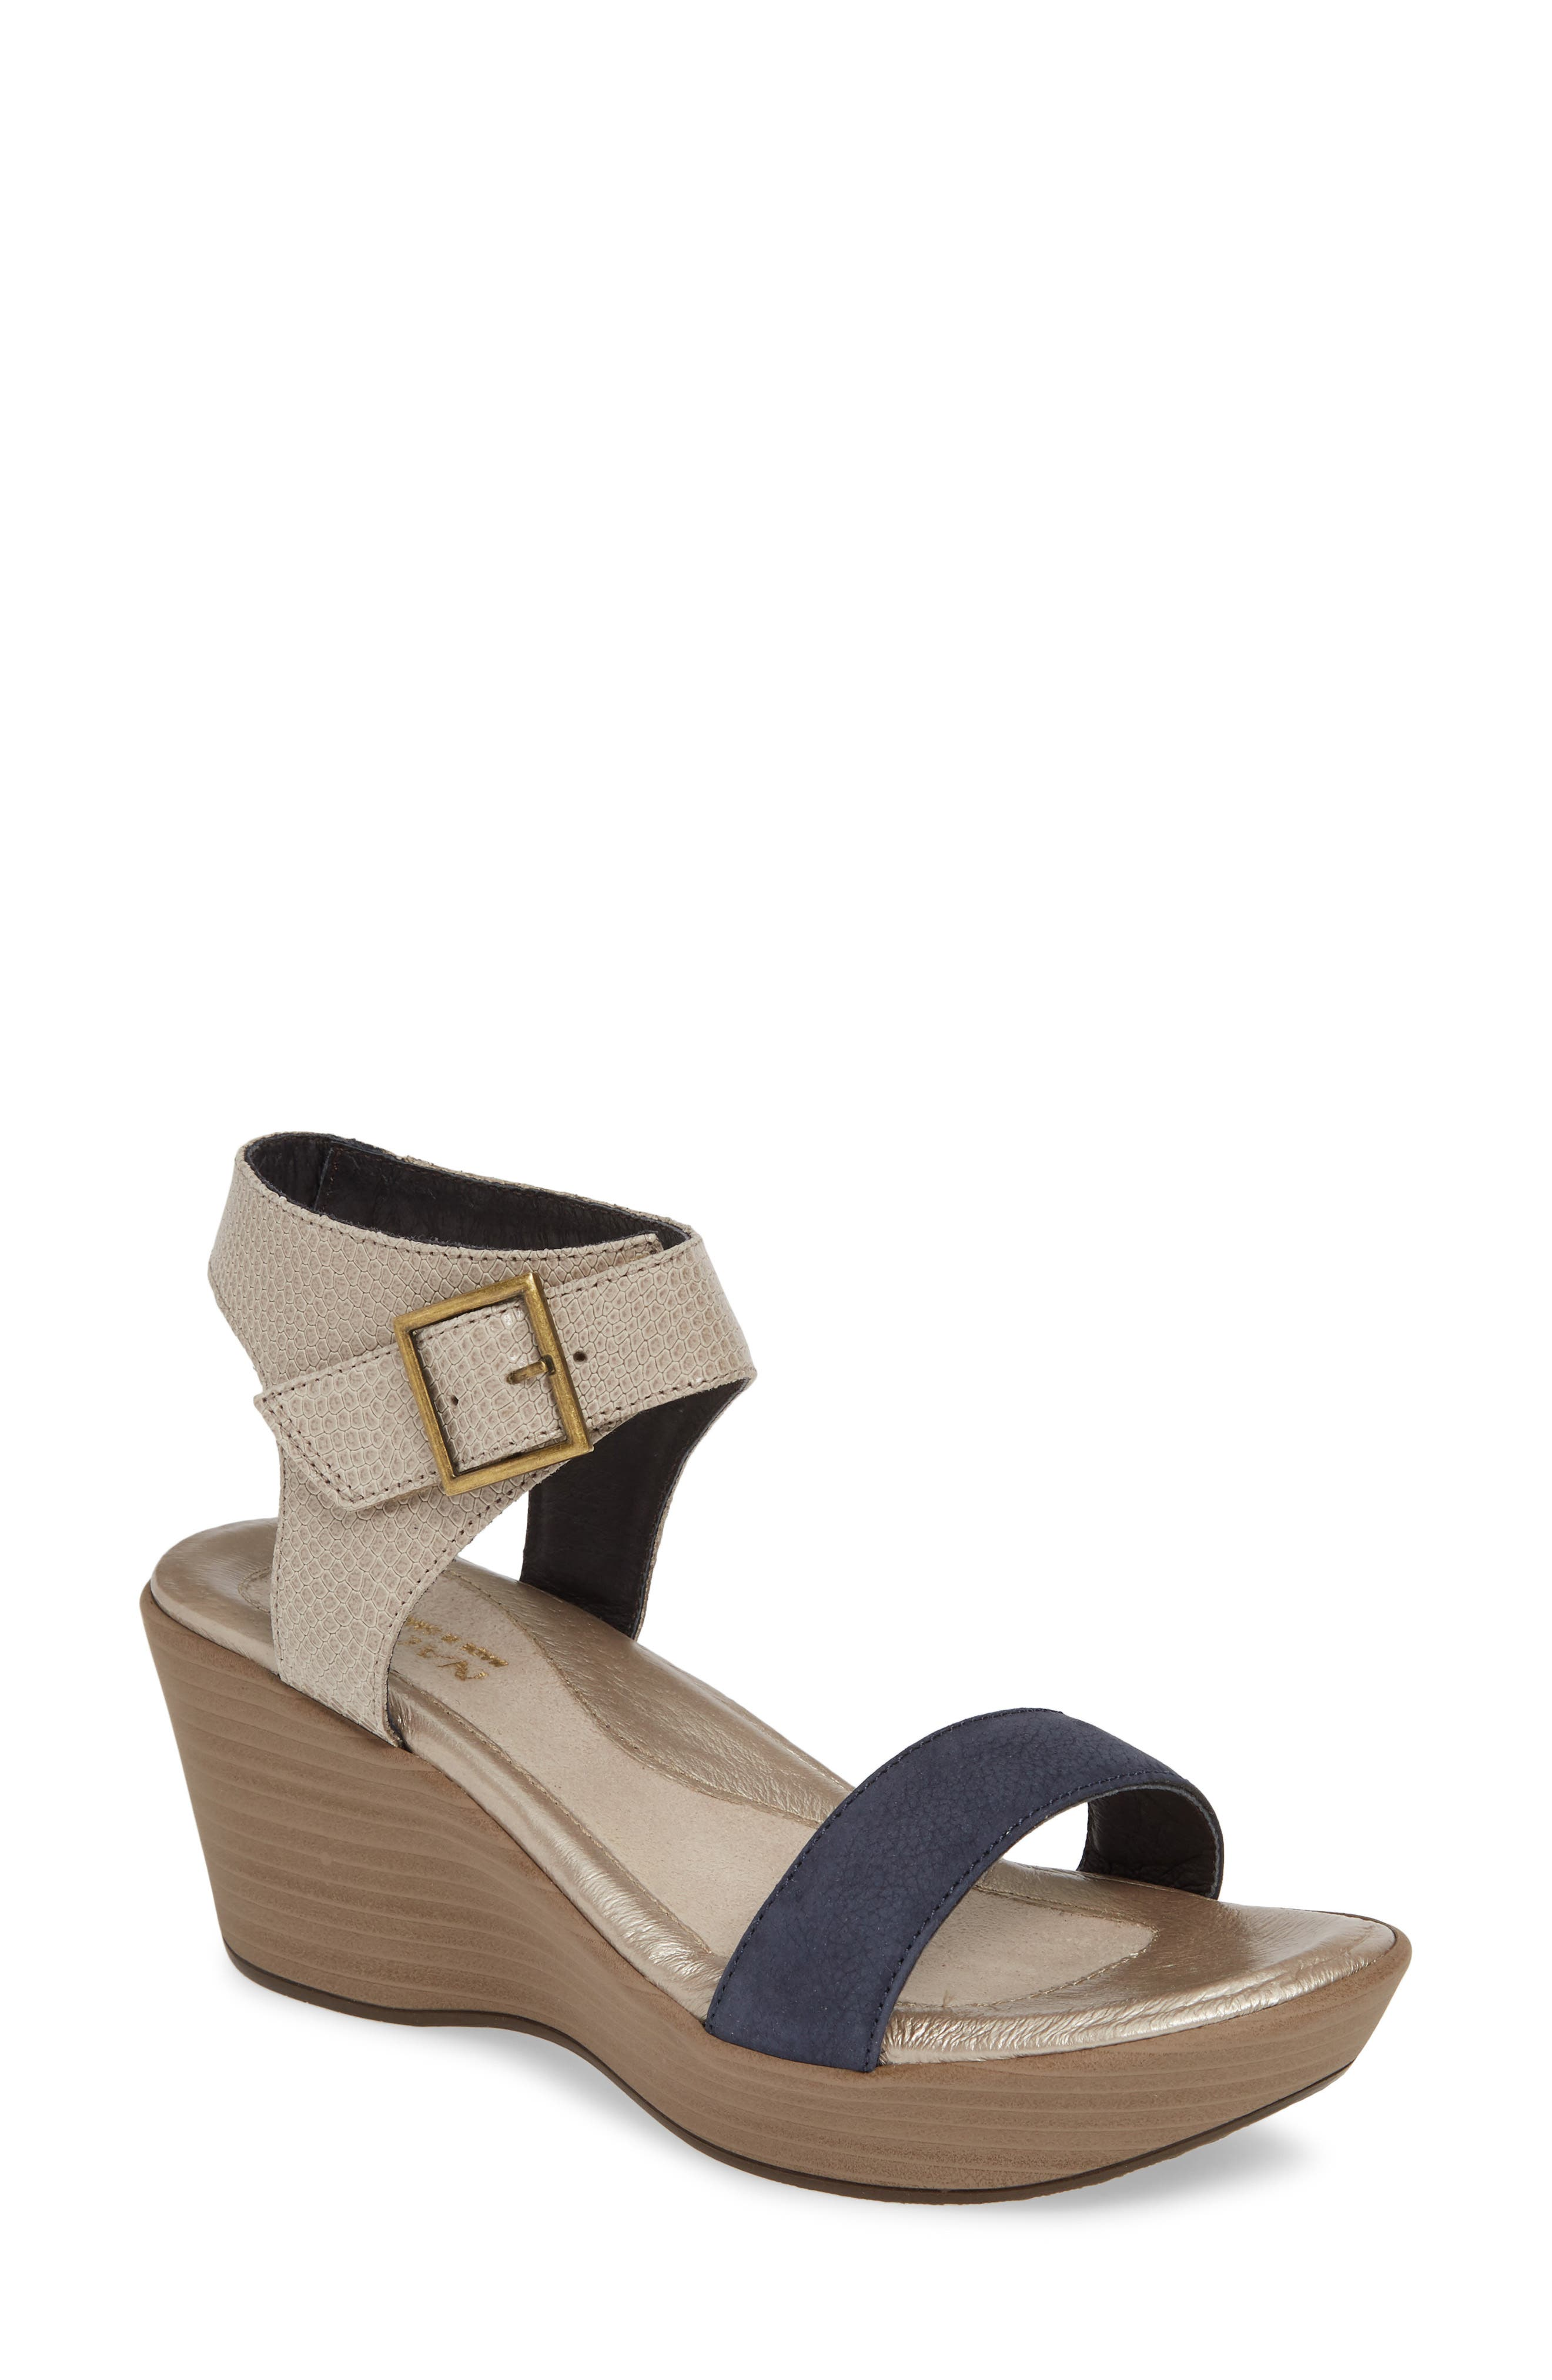 NAOT Caprice Wedge Sandal, Main, color, BEIGE LIZARD/ NAVY VELVET